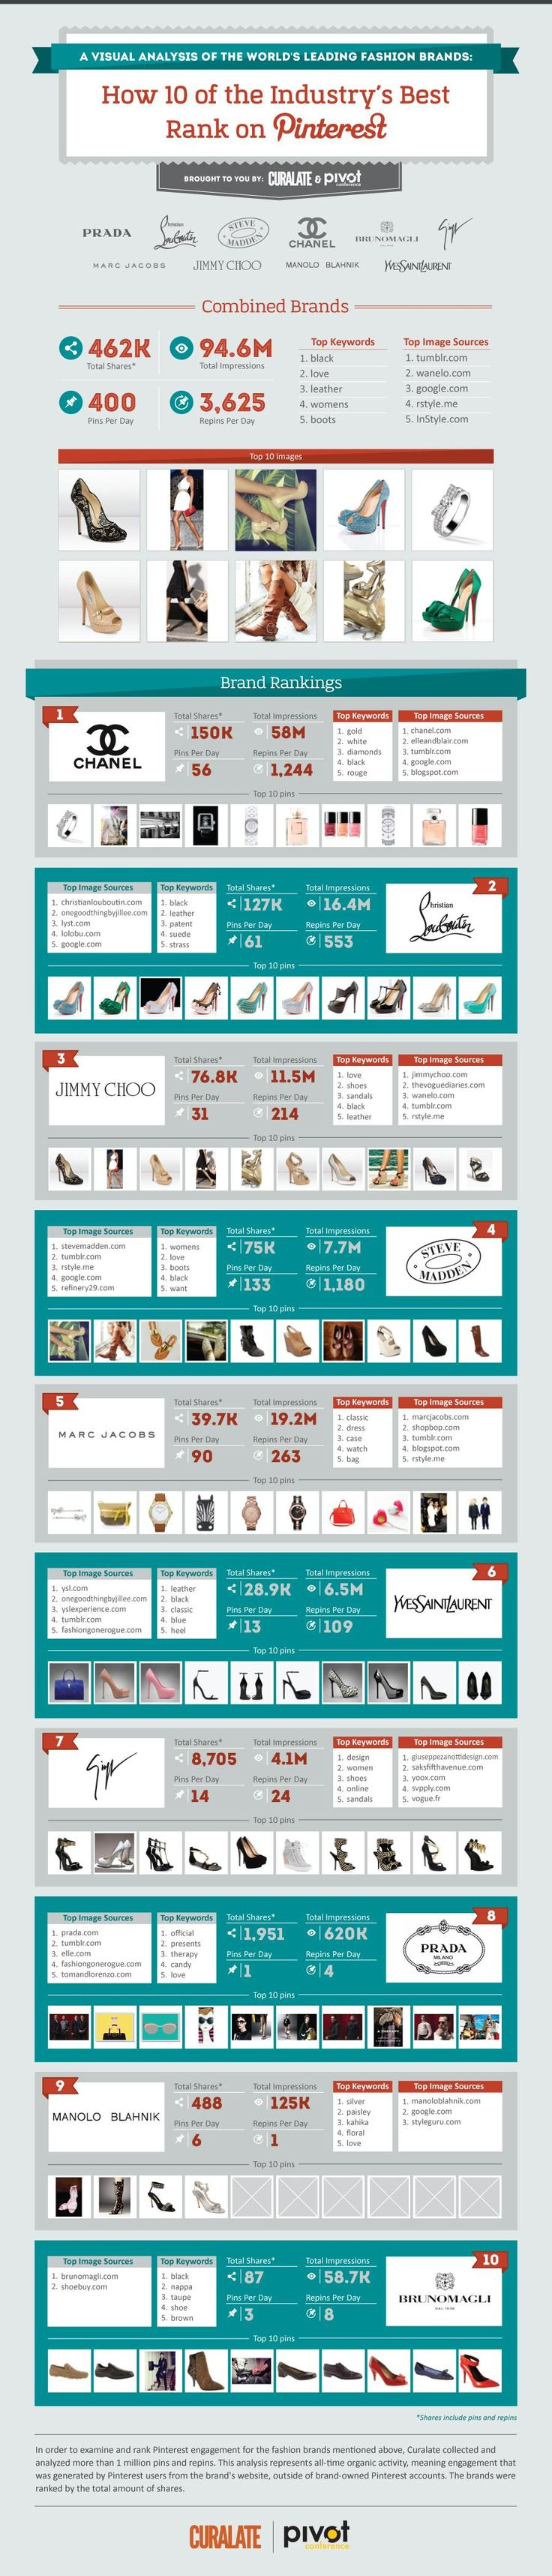 Chanel, Christian Louboutin Top List of Most Popular Fashion Brands on Pinterest